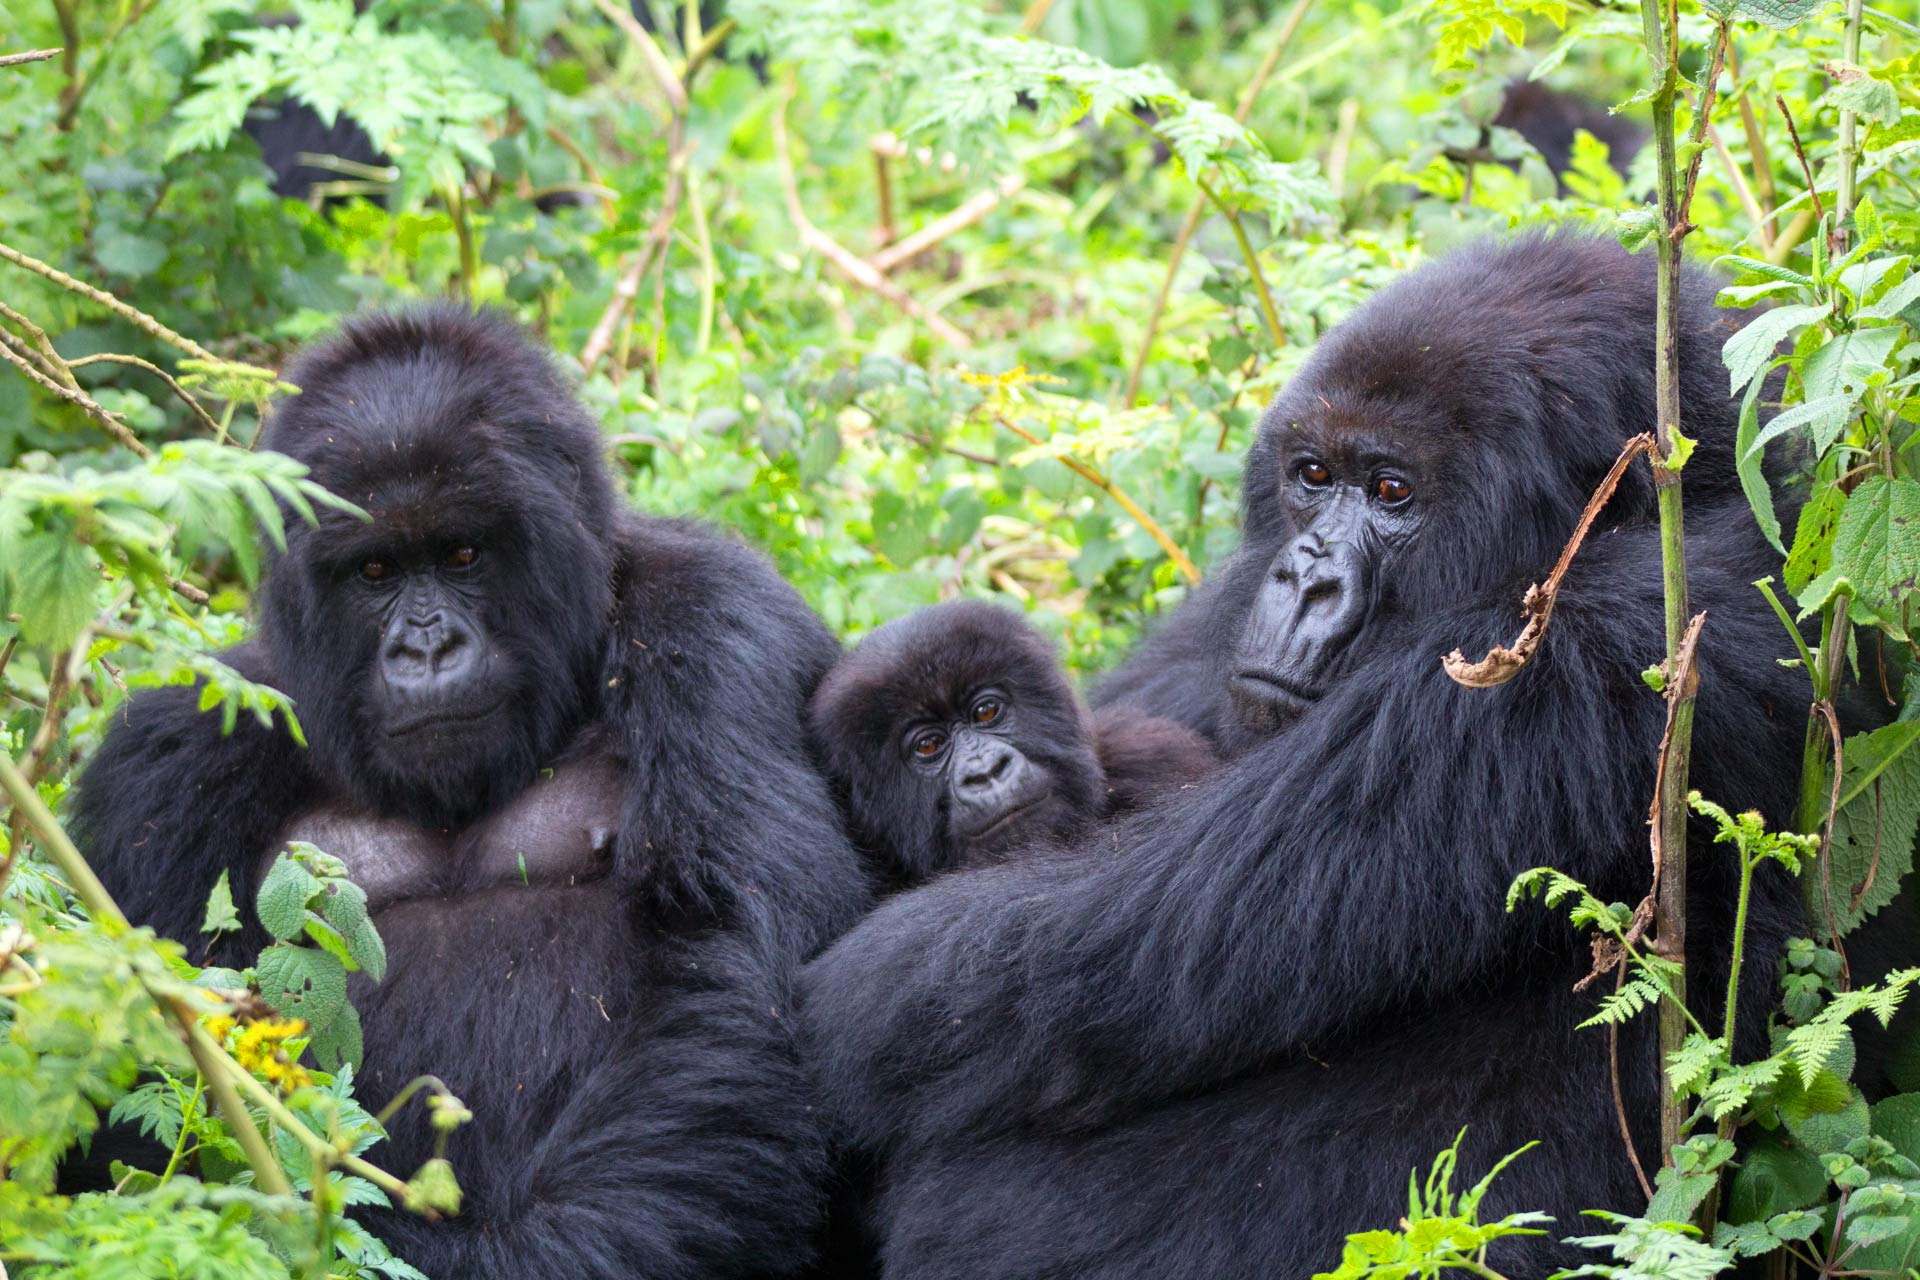 Bwindi Impenetrable National Park is the popular Uganda gorilla trekking safari park and where many would love to go for their gorilla trekking safari with the habituated gorilla families in Bwindi forest.